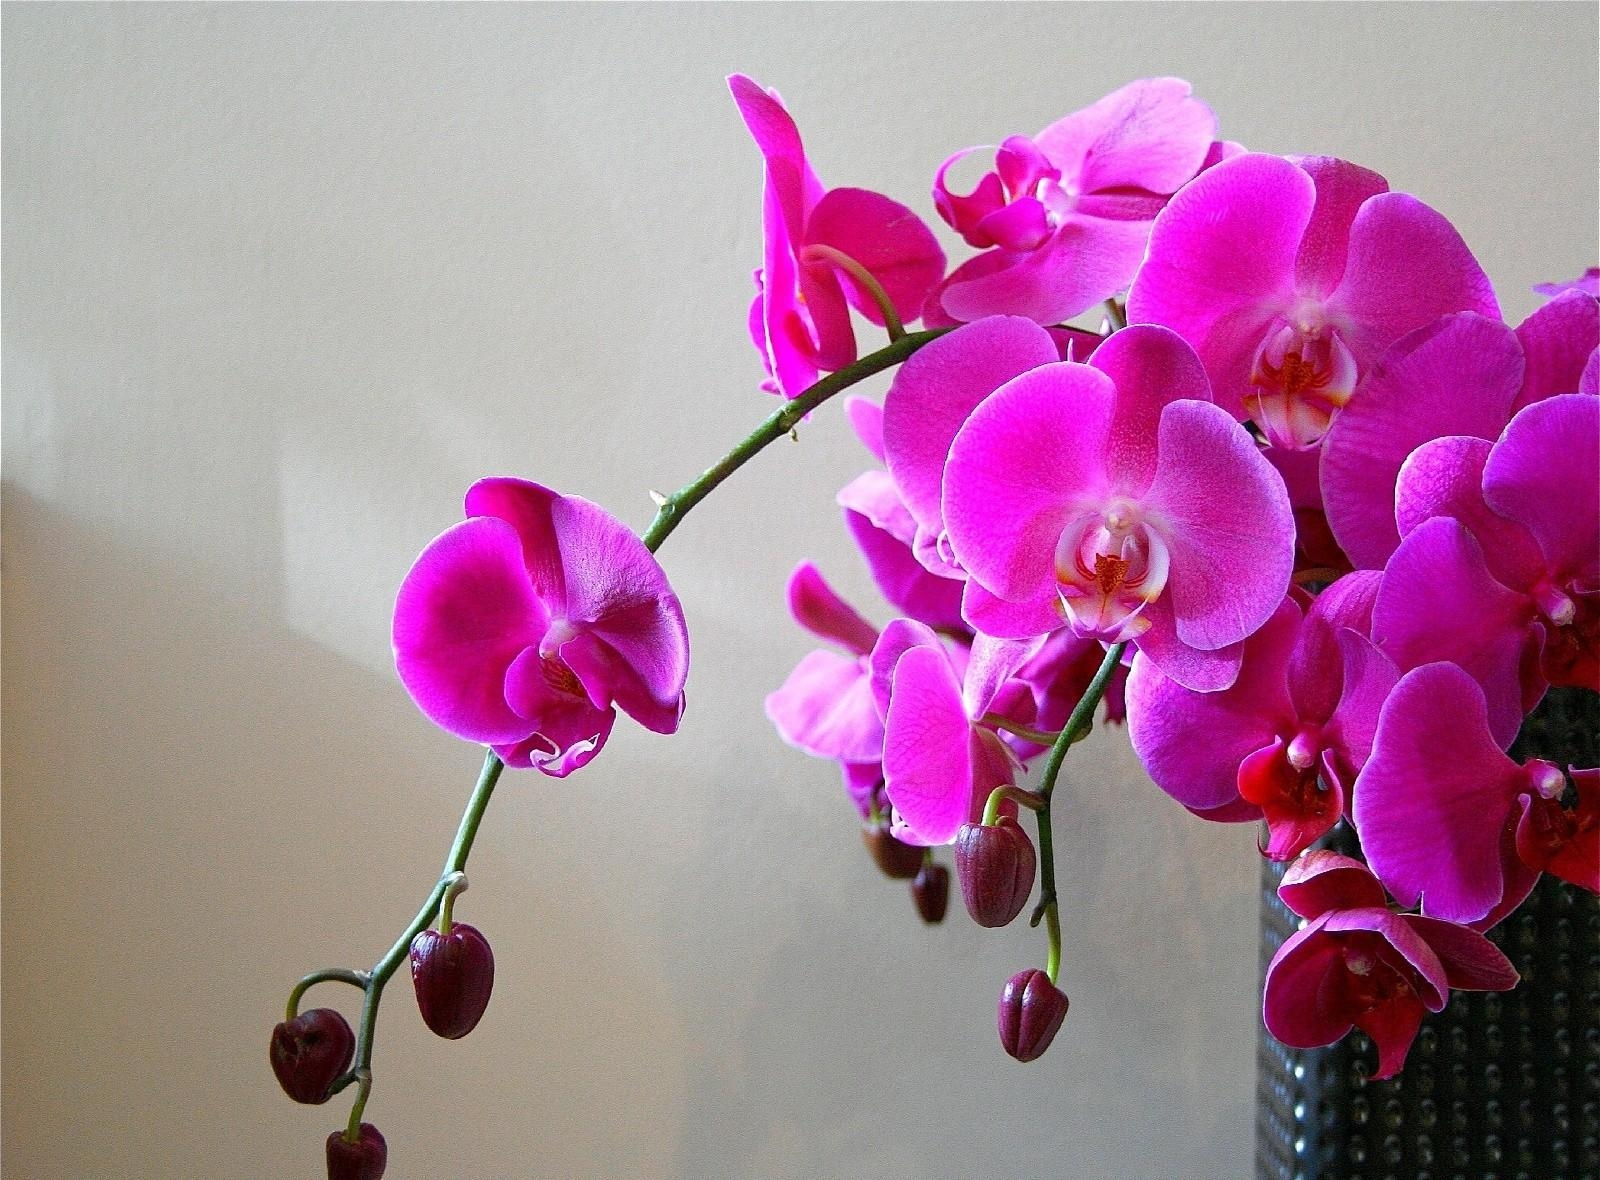 154581 download wallpaper Flowers, Bright, Branch, Vase, Orchids screensavers and pictures for free